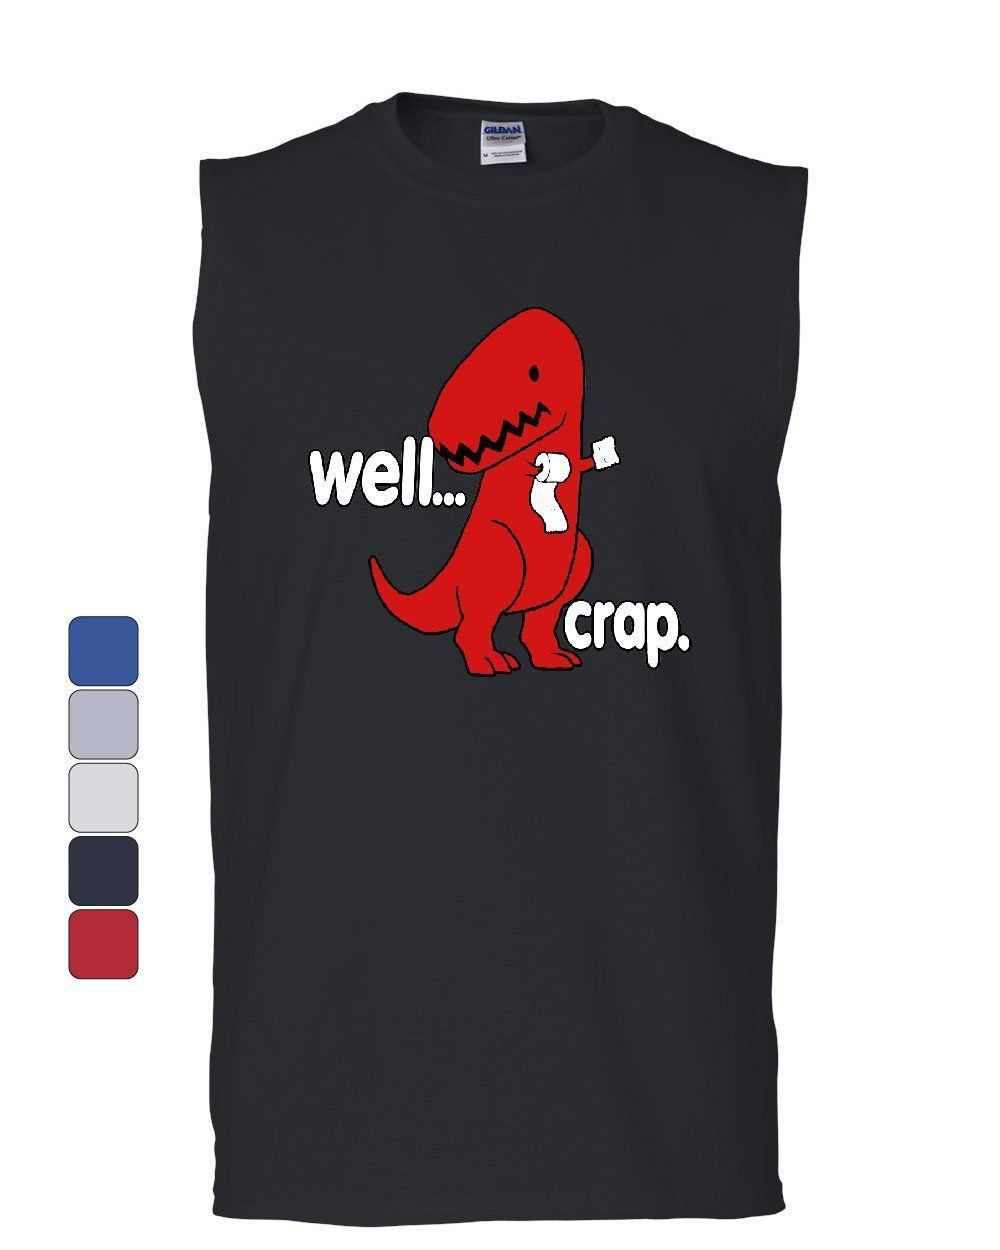 Primary image for Well Crap Muscle Shirt Funny T-Rex Fail Short Hands Tyrannosaurus Sleeveless